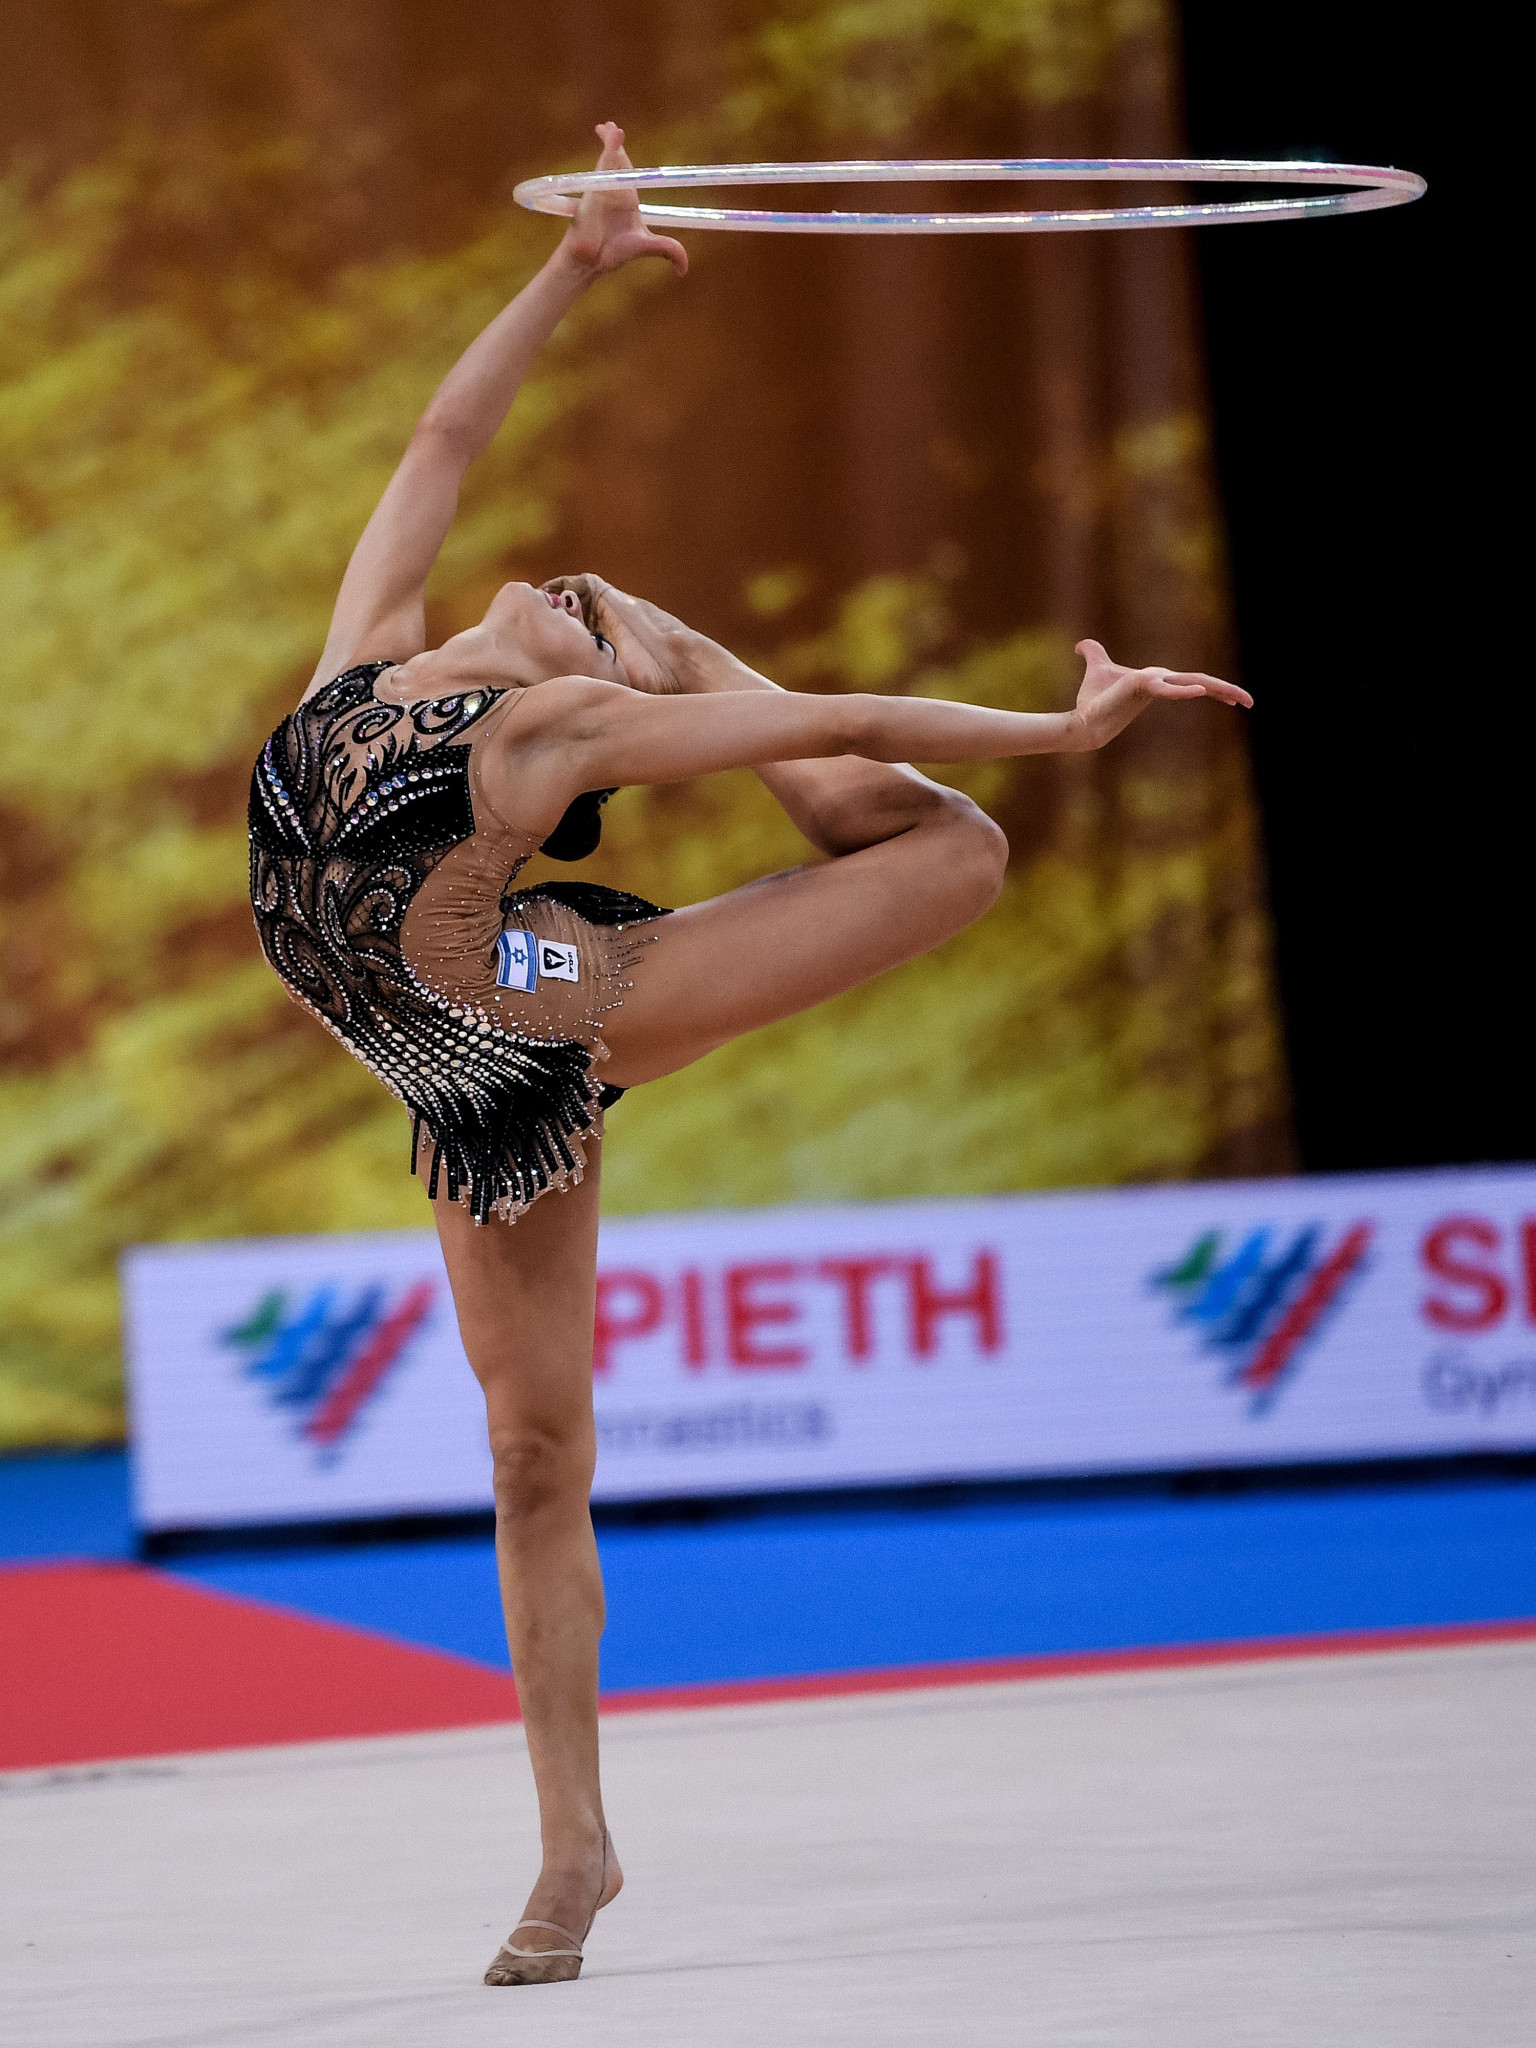 World all-around silver medallist Linoy Ashram will lead the Israel challenge at the European Rhythmic Gymnastics Championships that start in Baku tomorrow ©Getty Images